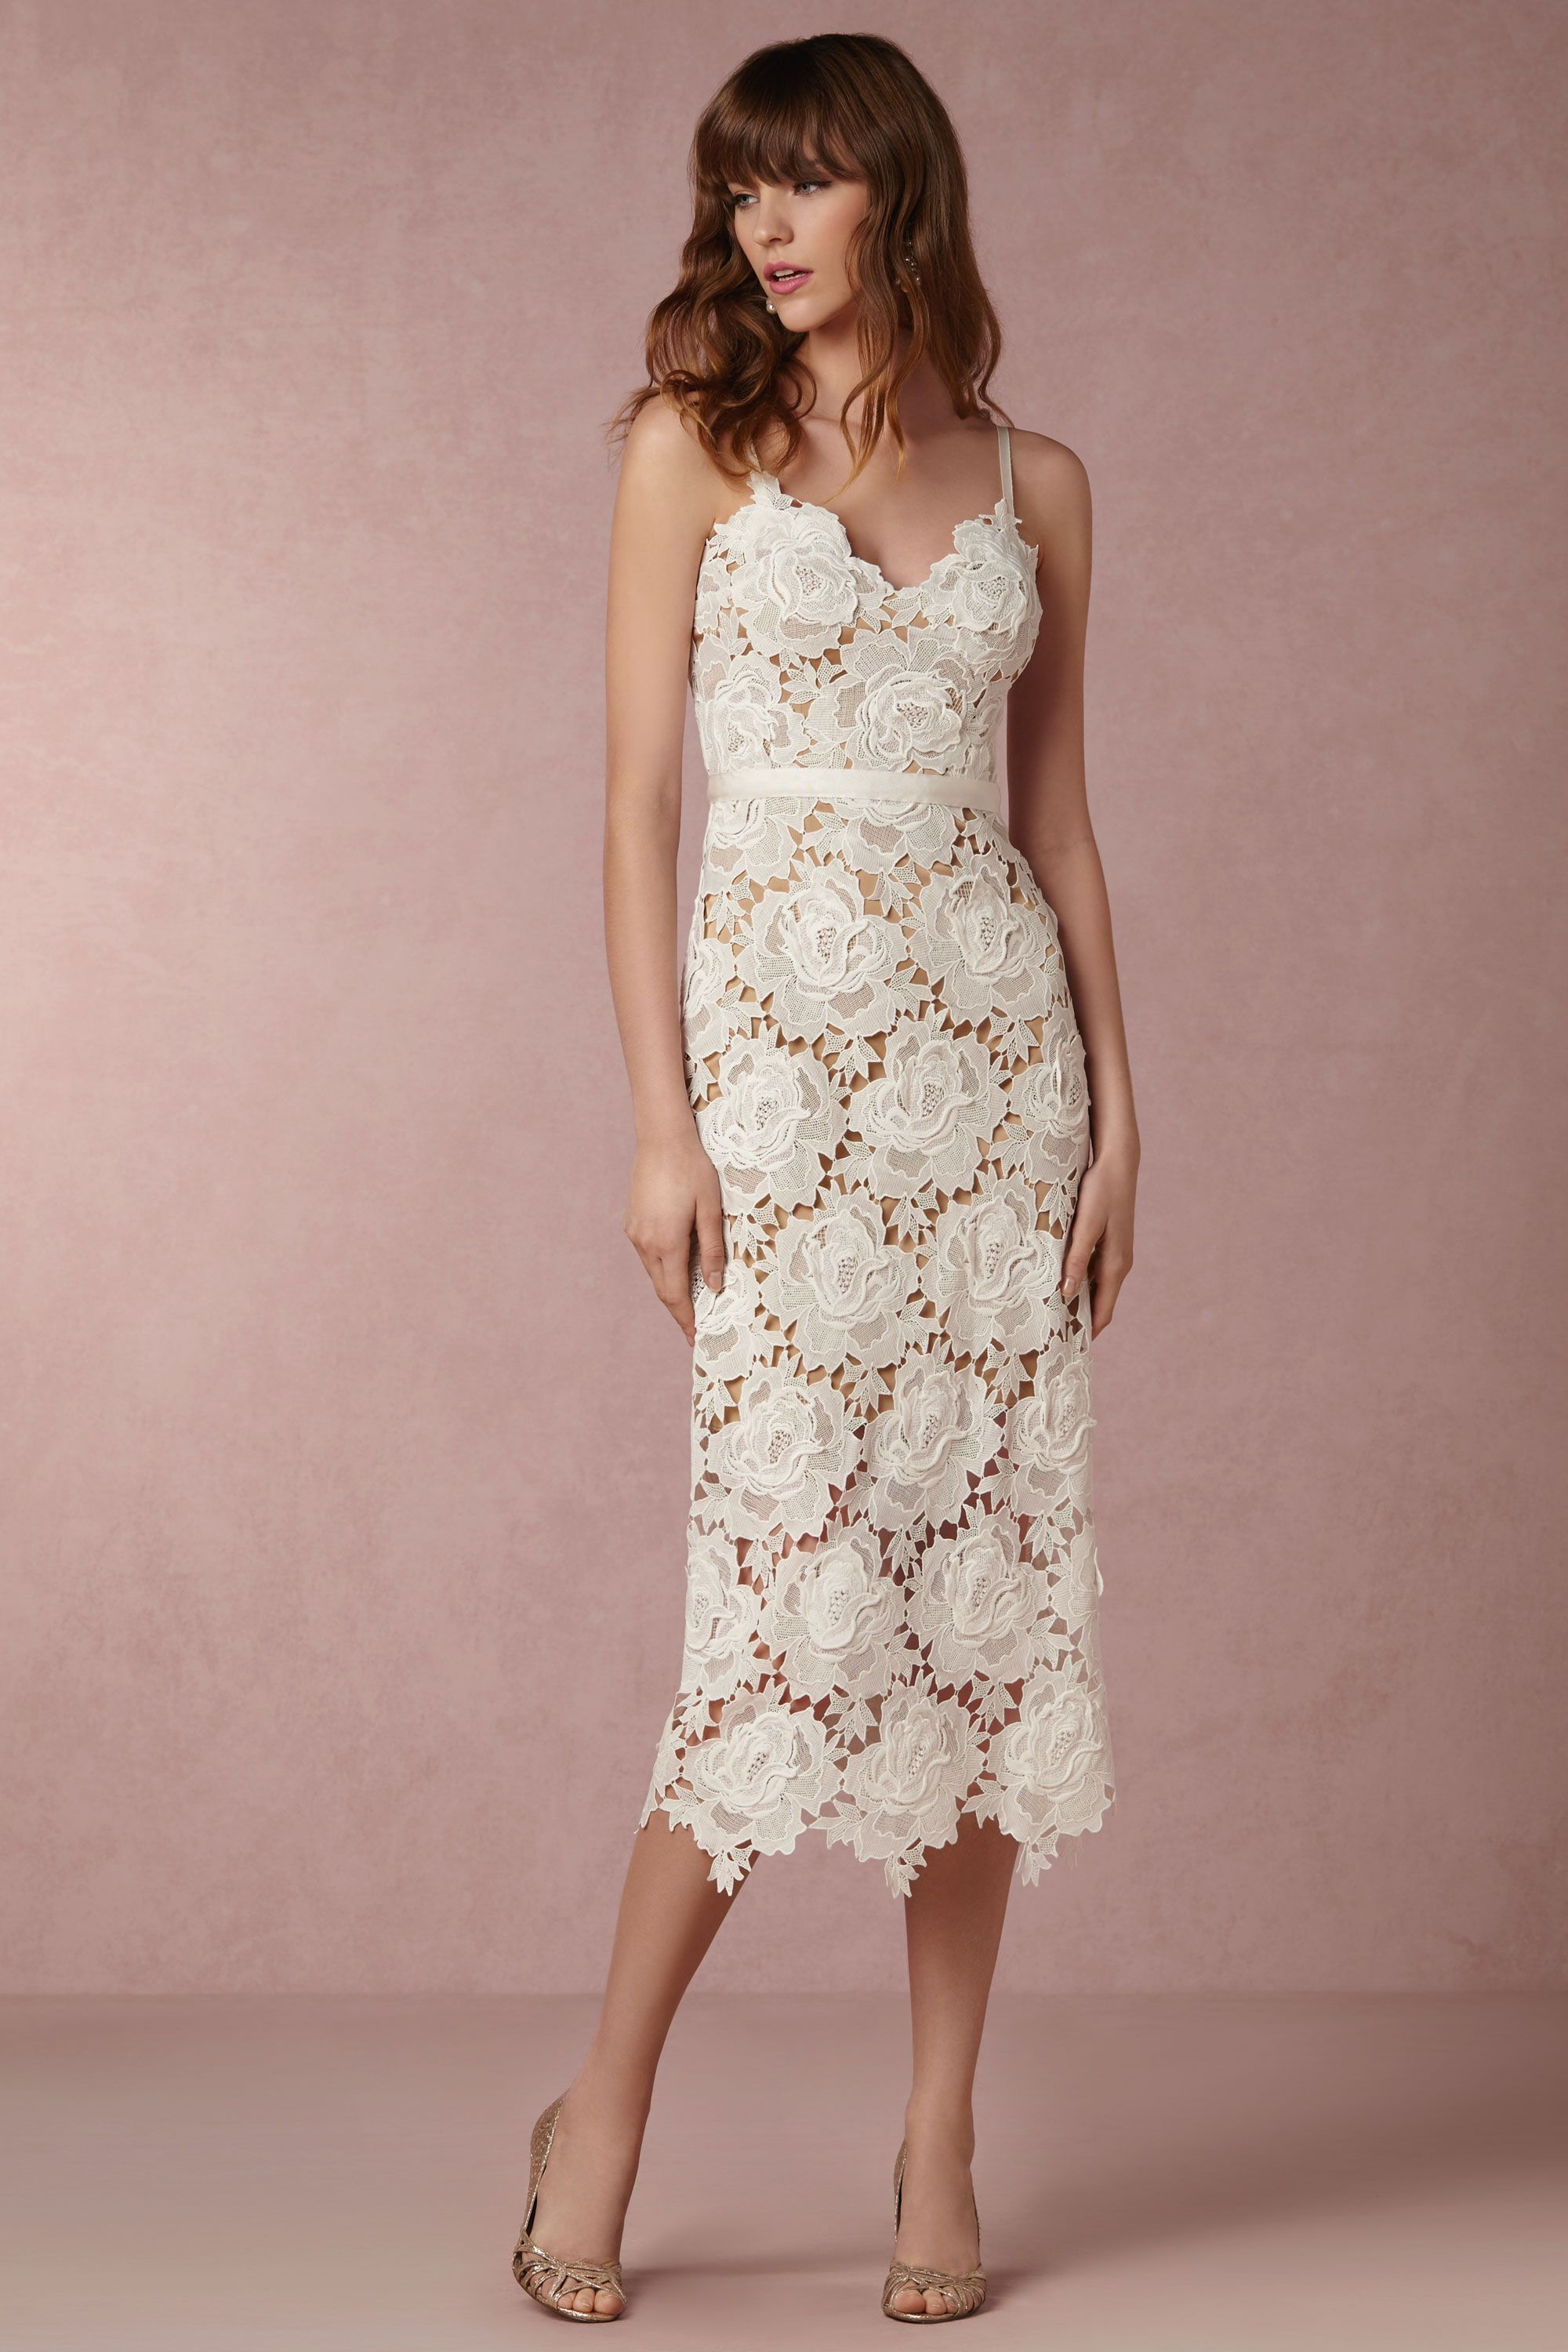 BHLDN\'s Catherine Deane Frida Dress in Ivory | Novios, Boda y ...